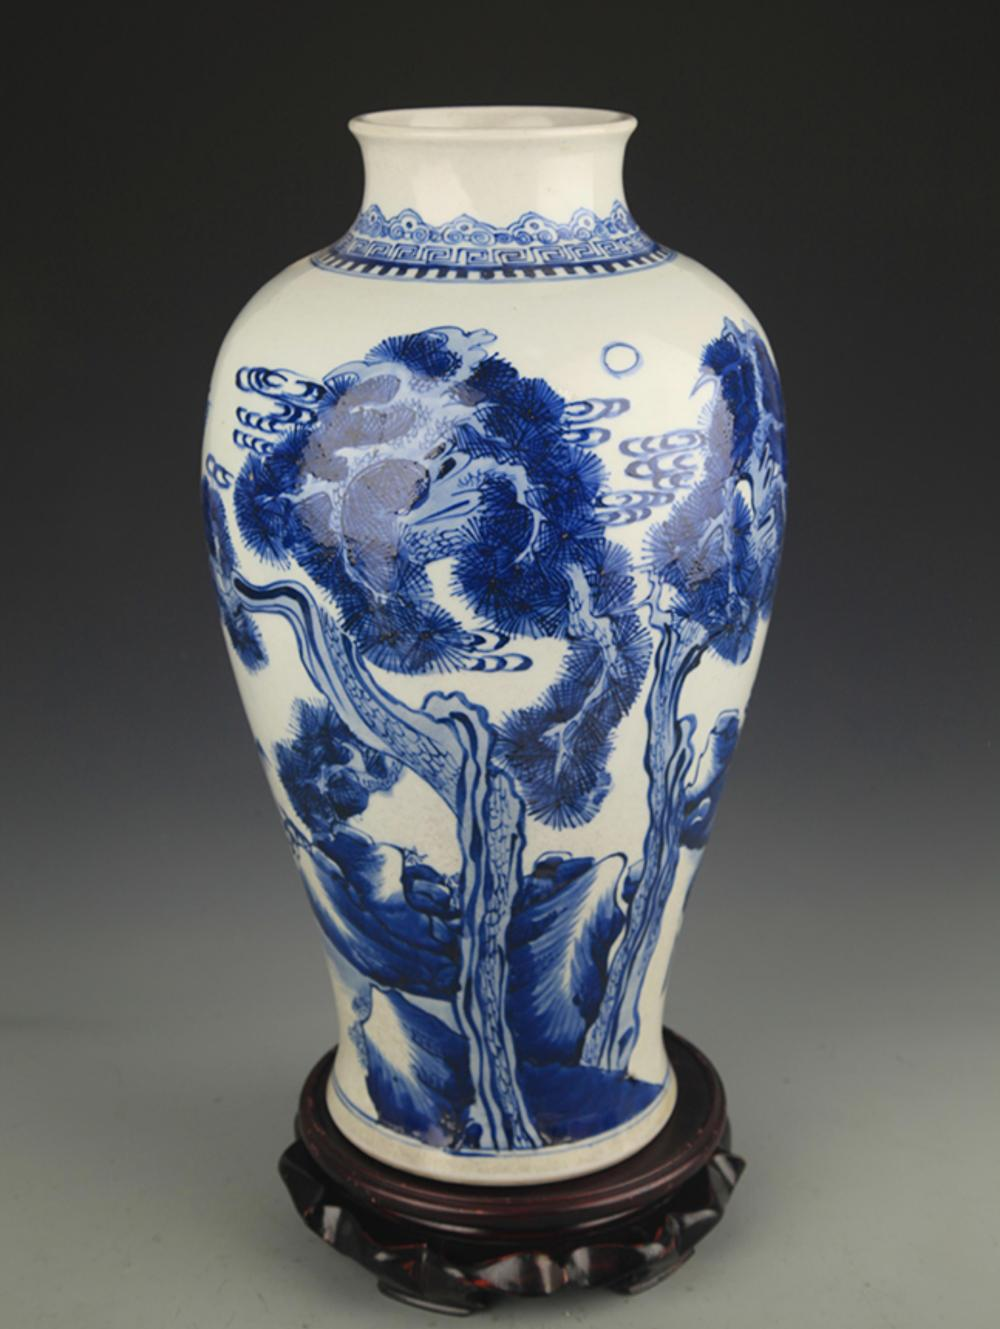 BLUE AND WHITE PINE TREE AND CRANE PATTERN VASE